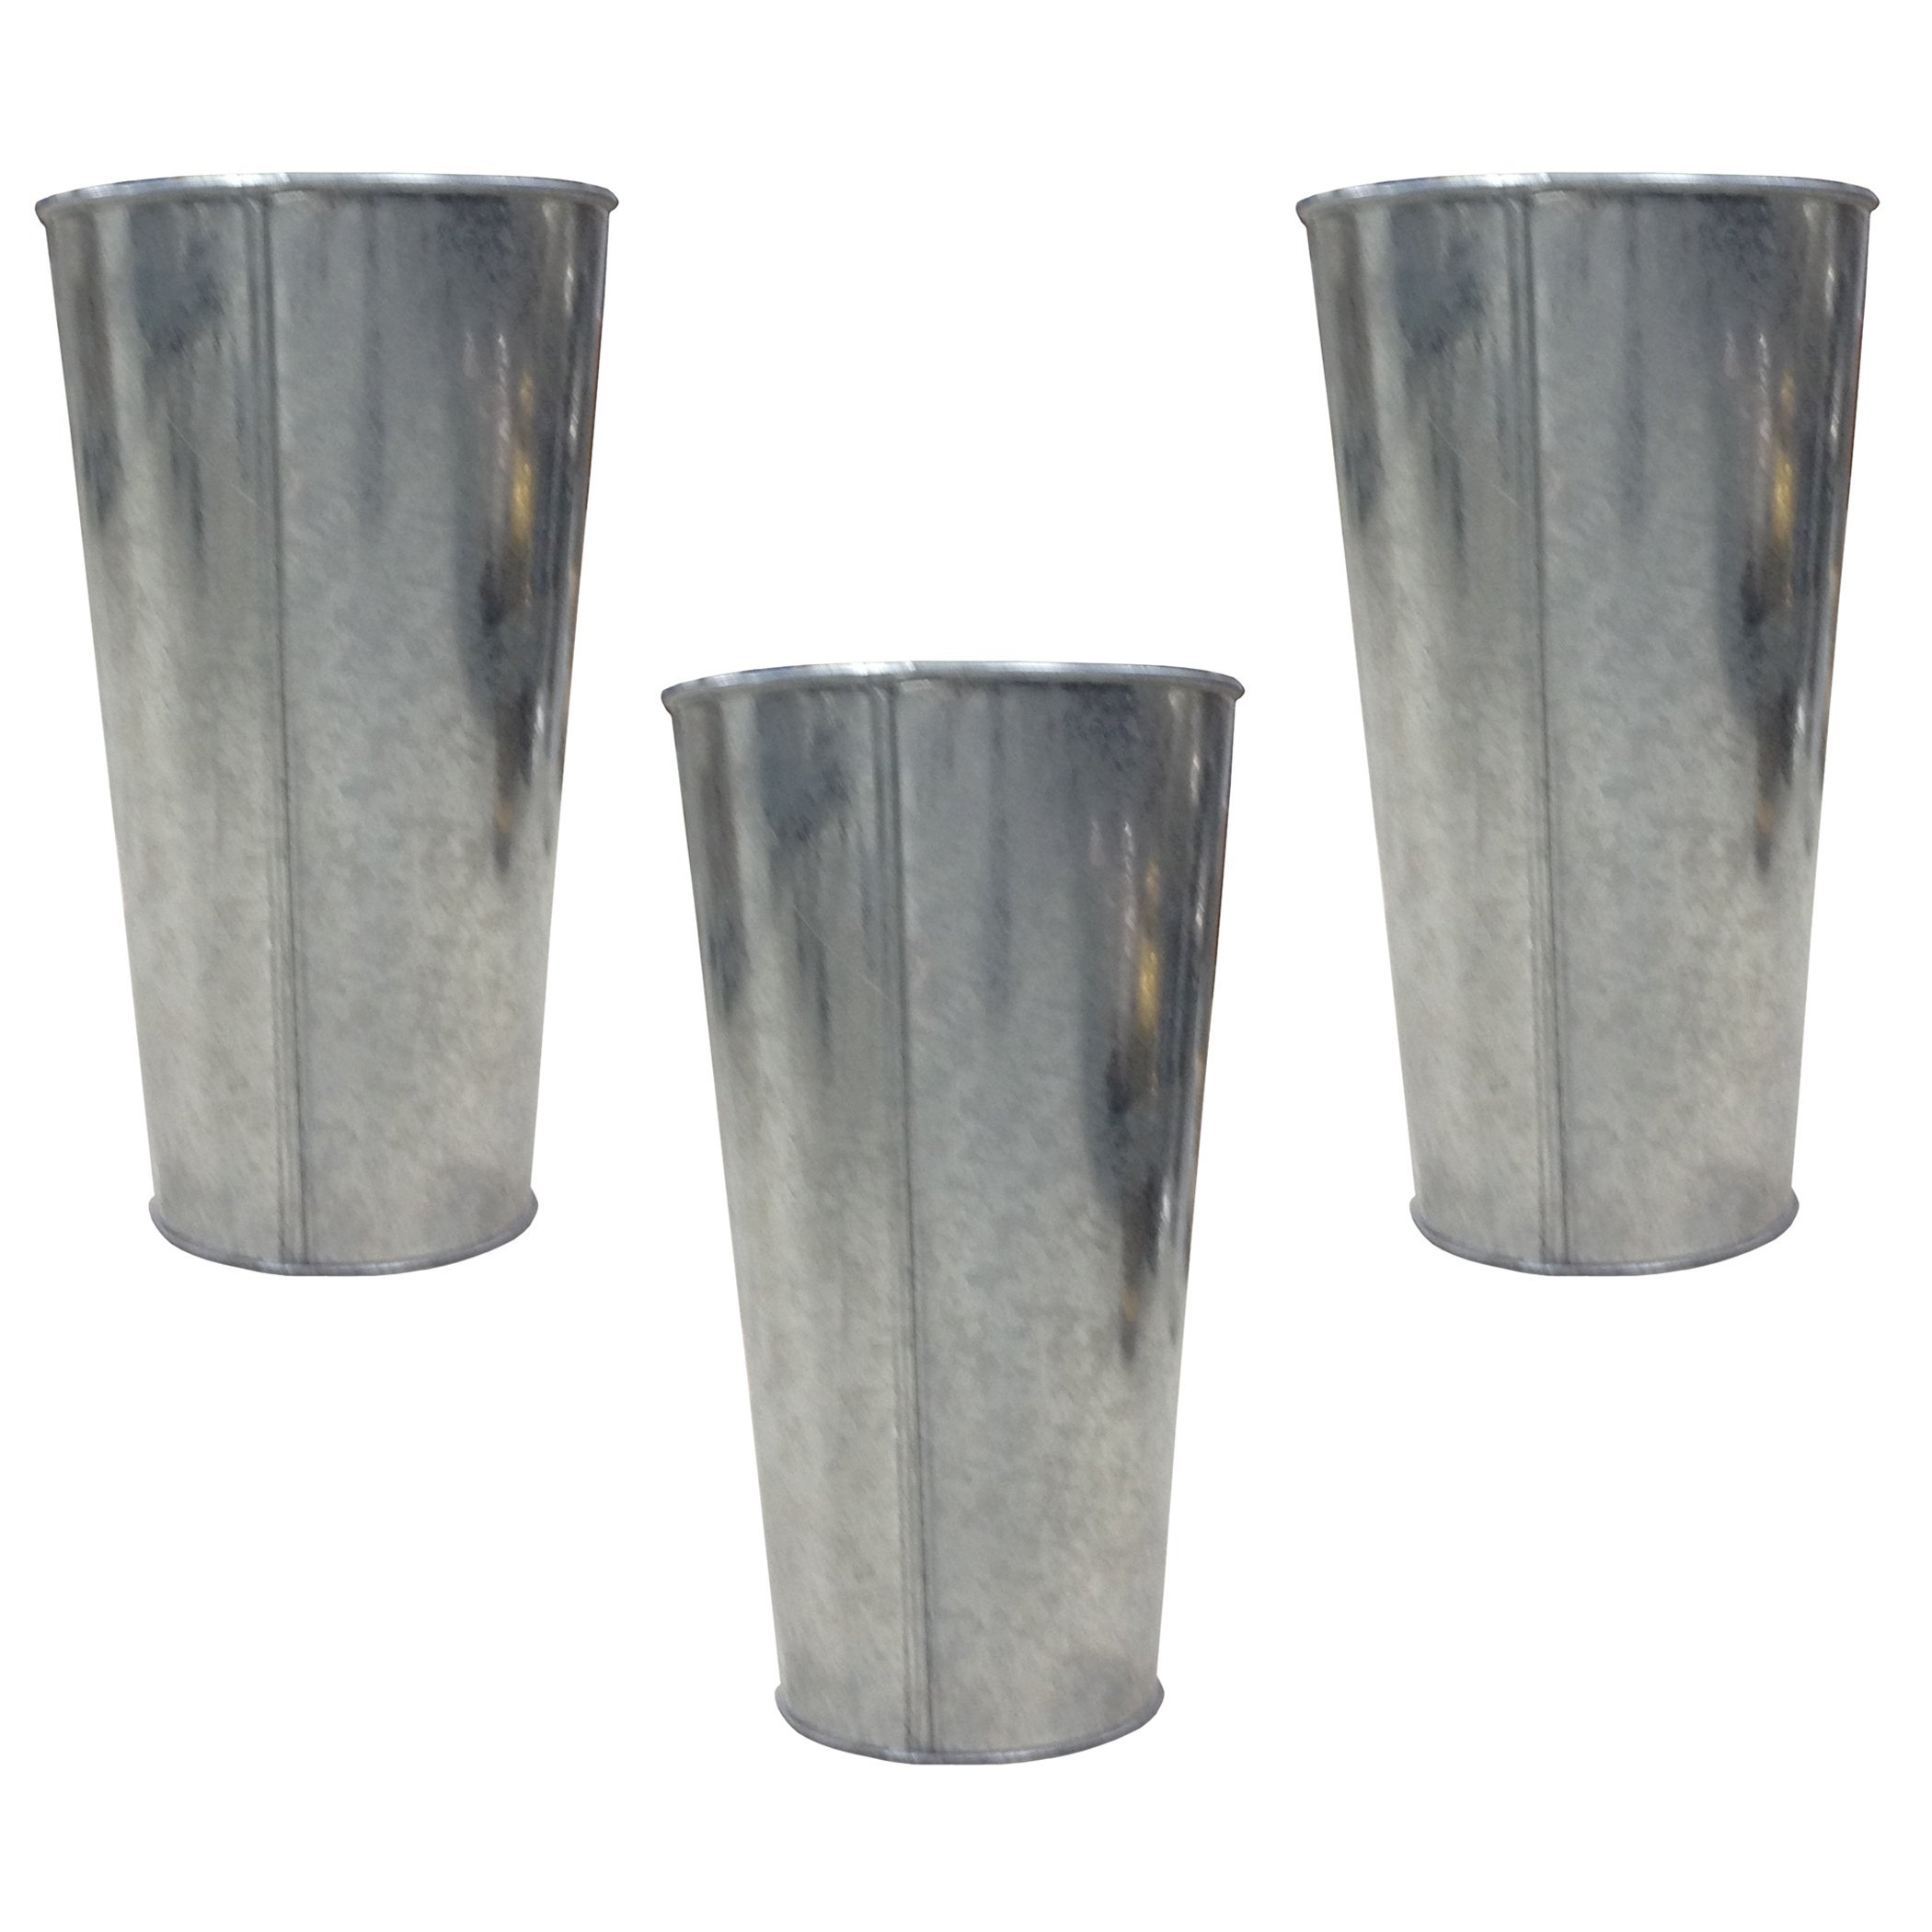 Hosley's Set of 3 Galvanized Vases / French Buckets - 9'' High. Ideal for DIY Craft and Floral Projects, Party Favors, Festivities, Wedding O3 by Hosley